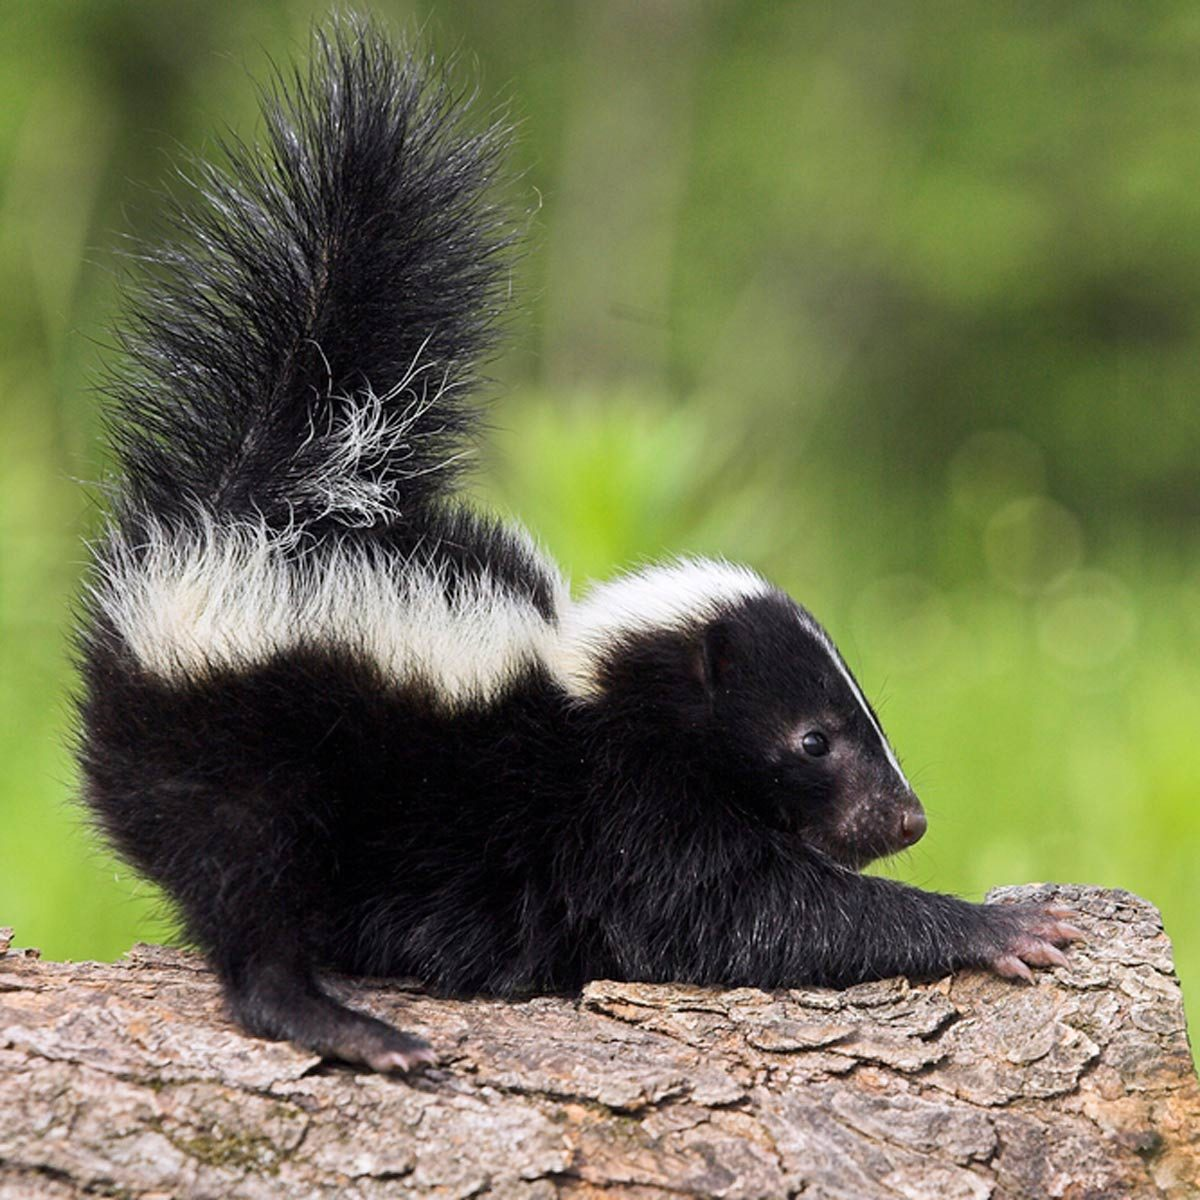 How To Get Rid Of Skunk Smell Family Handyman